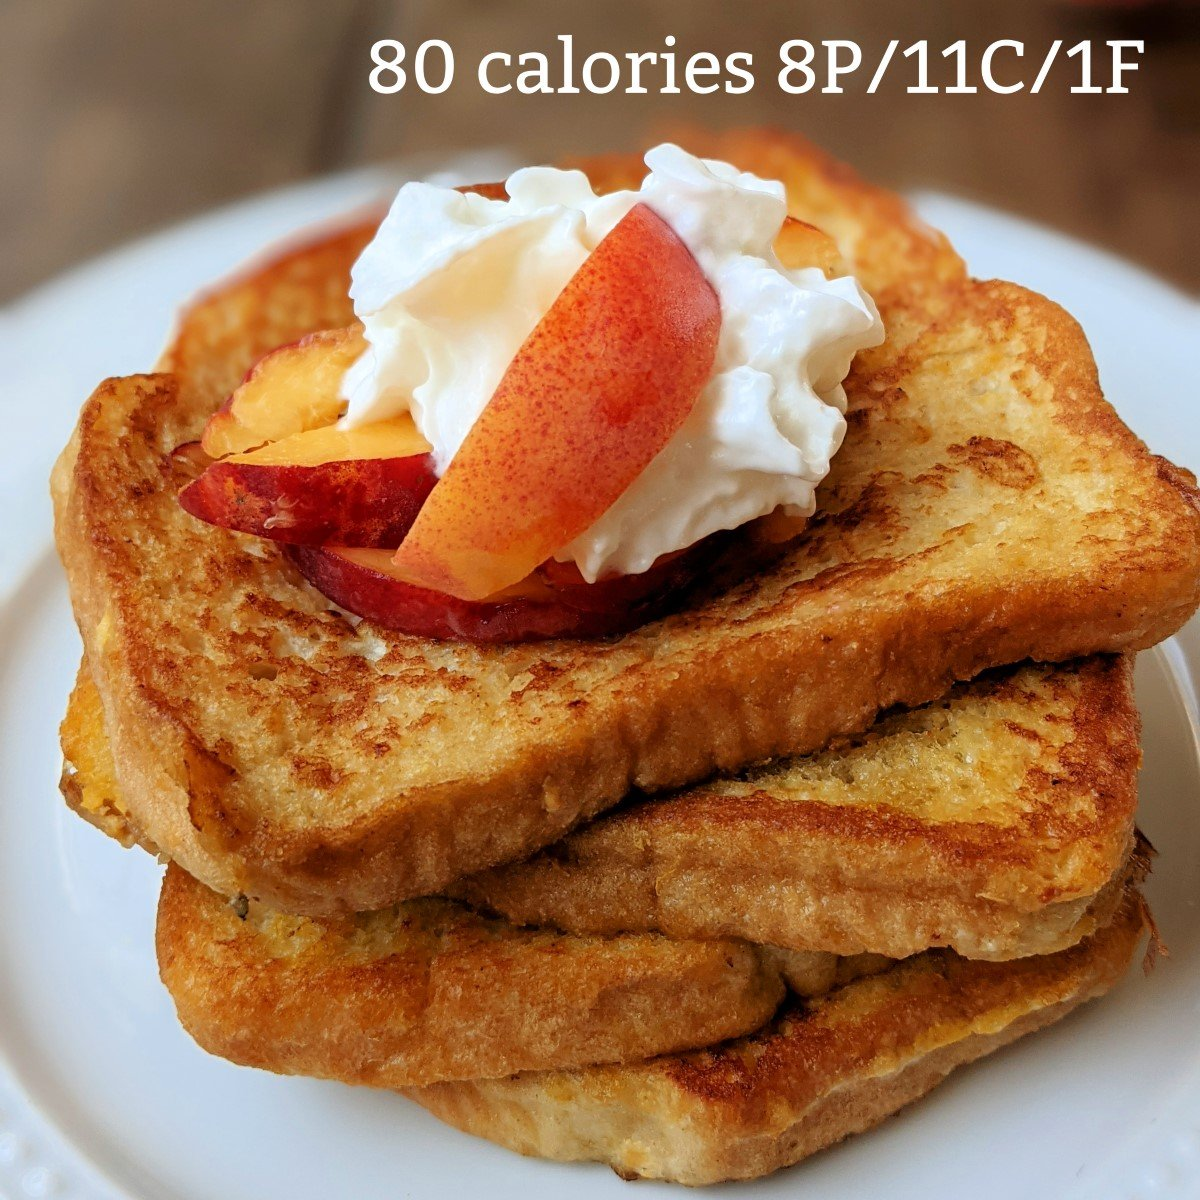 peaches and cream french toast with protein sq with calories and macros (Custom)